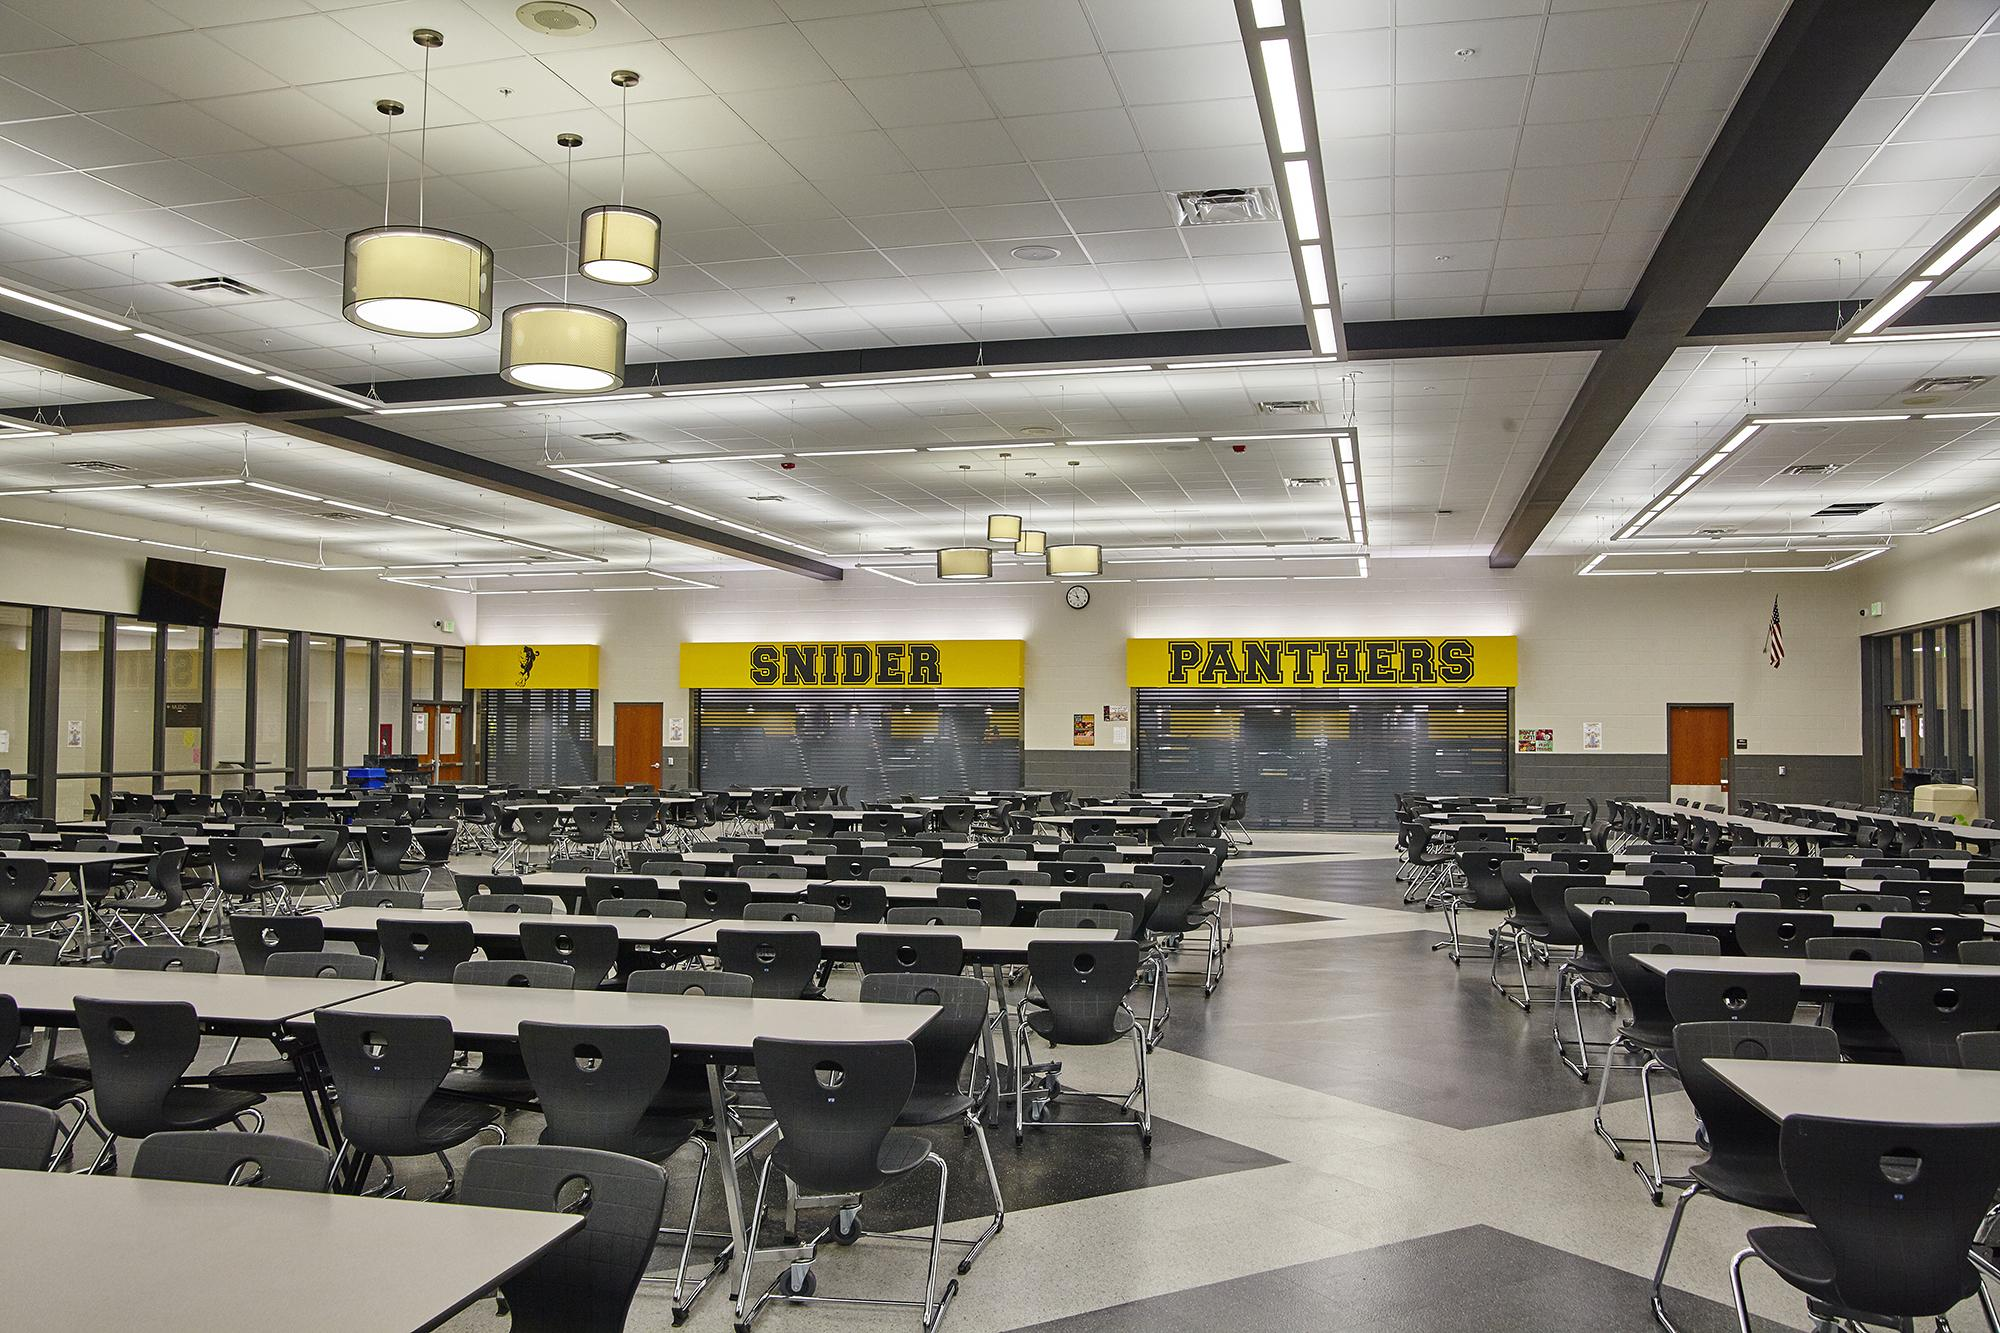 Snider High School